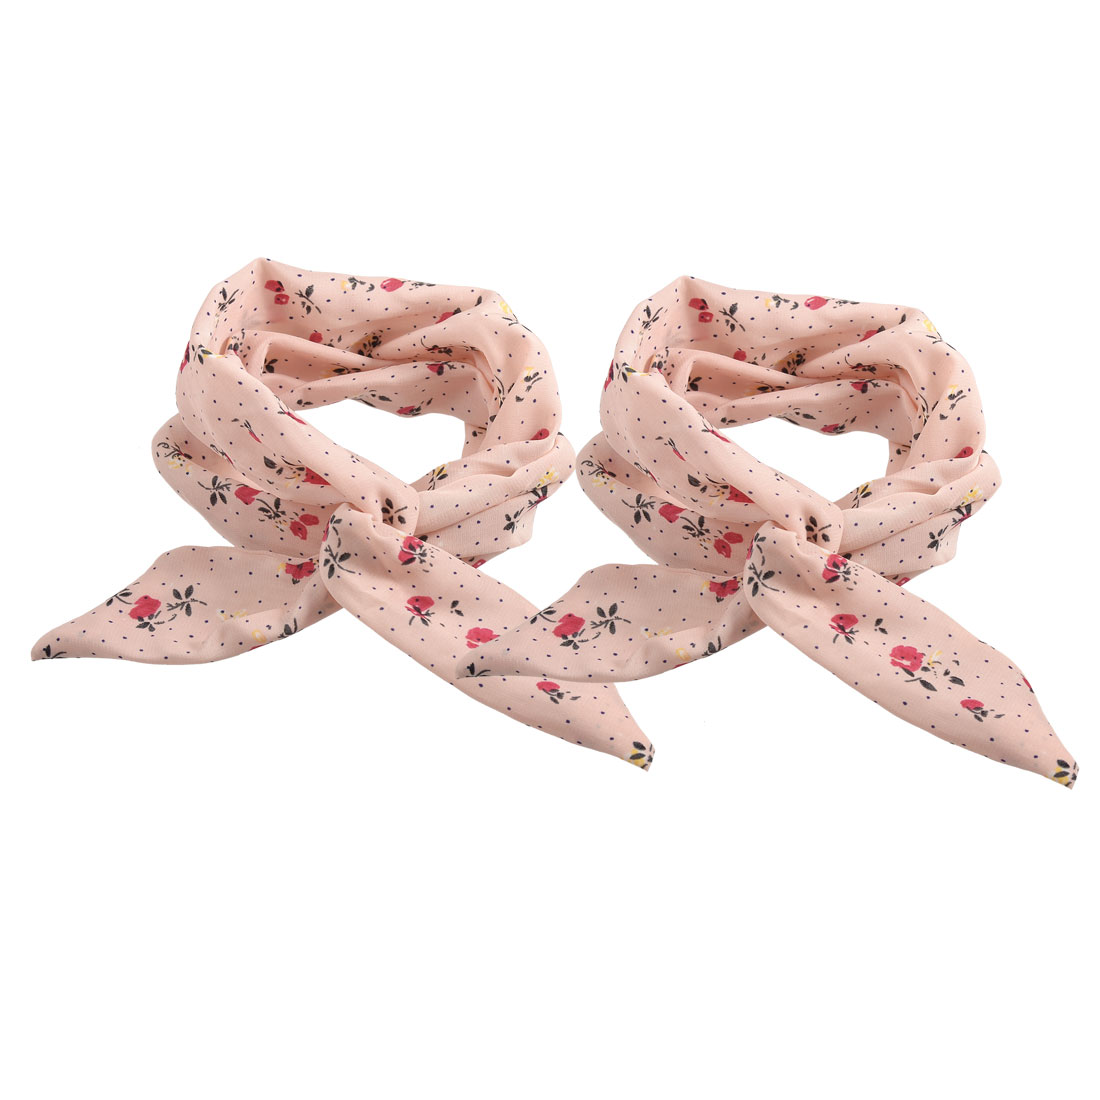 2 Pcs Mini Dots Print Pink Chiffon Wrapped Metal Band Hair Loop Ponytail Holder